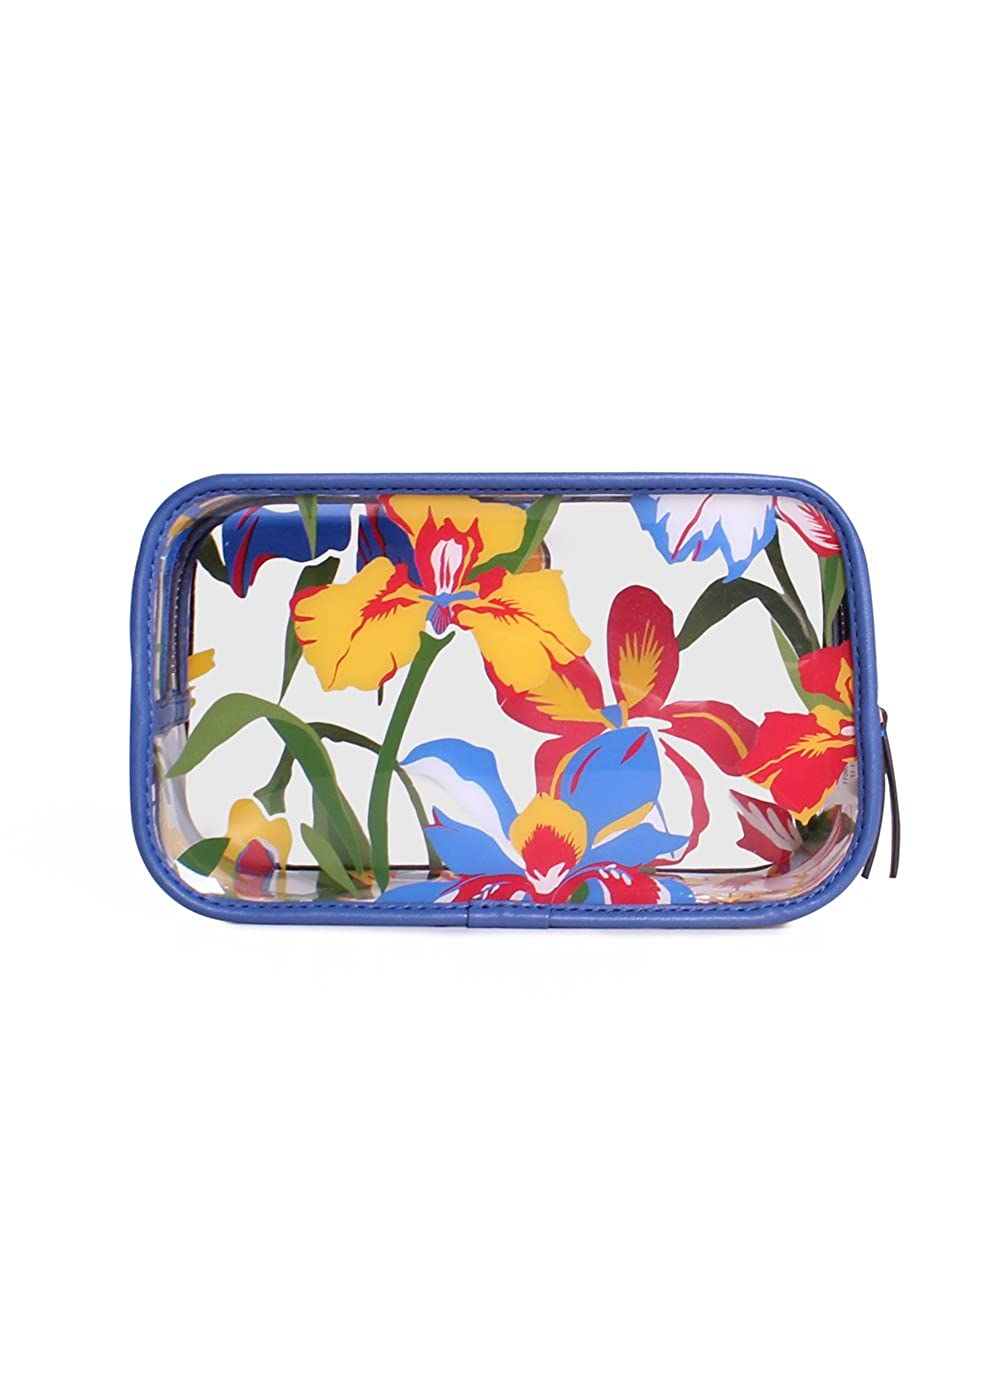 f1252b181797 Tory Burch Floral PVC Cosmetic Case in Painted Iris  Amazon.co.uk  Clothing